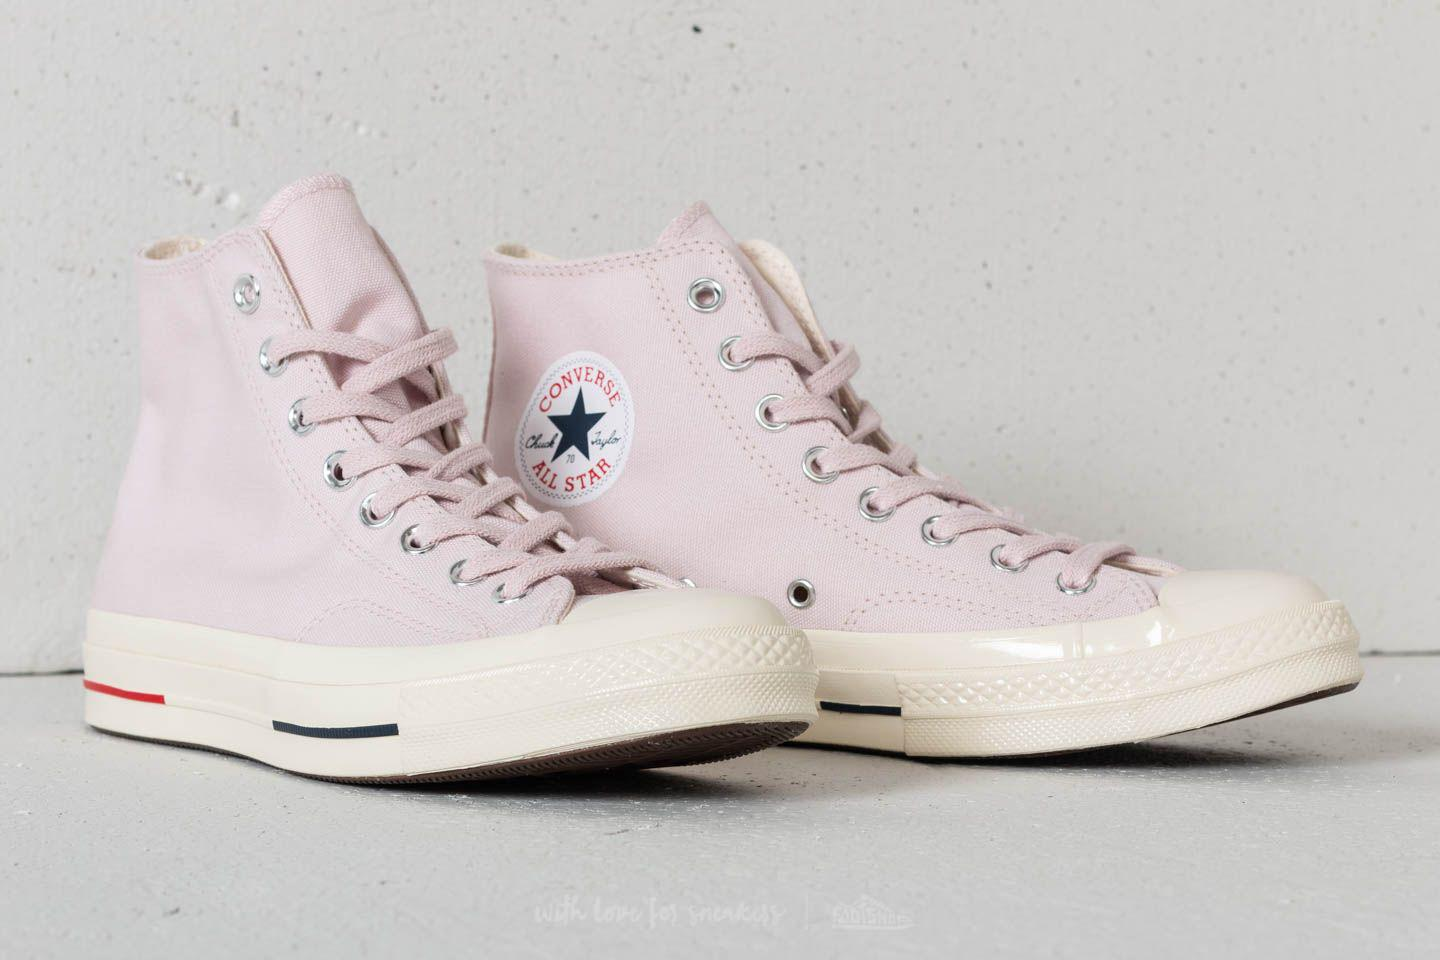 4124f5c044e2 Lyst - Converse Chuck Taylor All Star 70 Hi Barely Rose  Gym Red ...